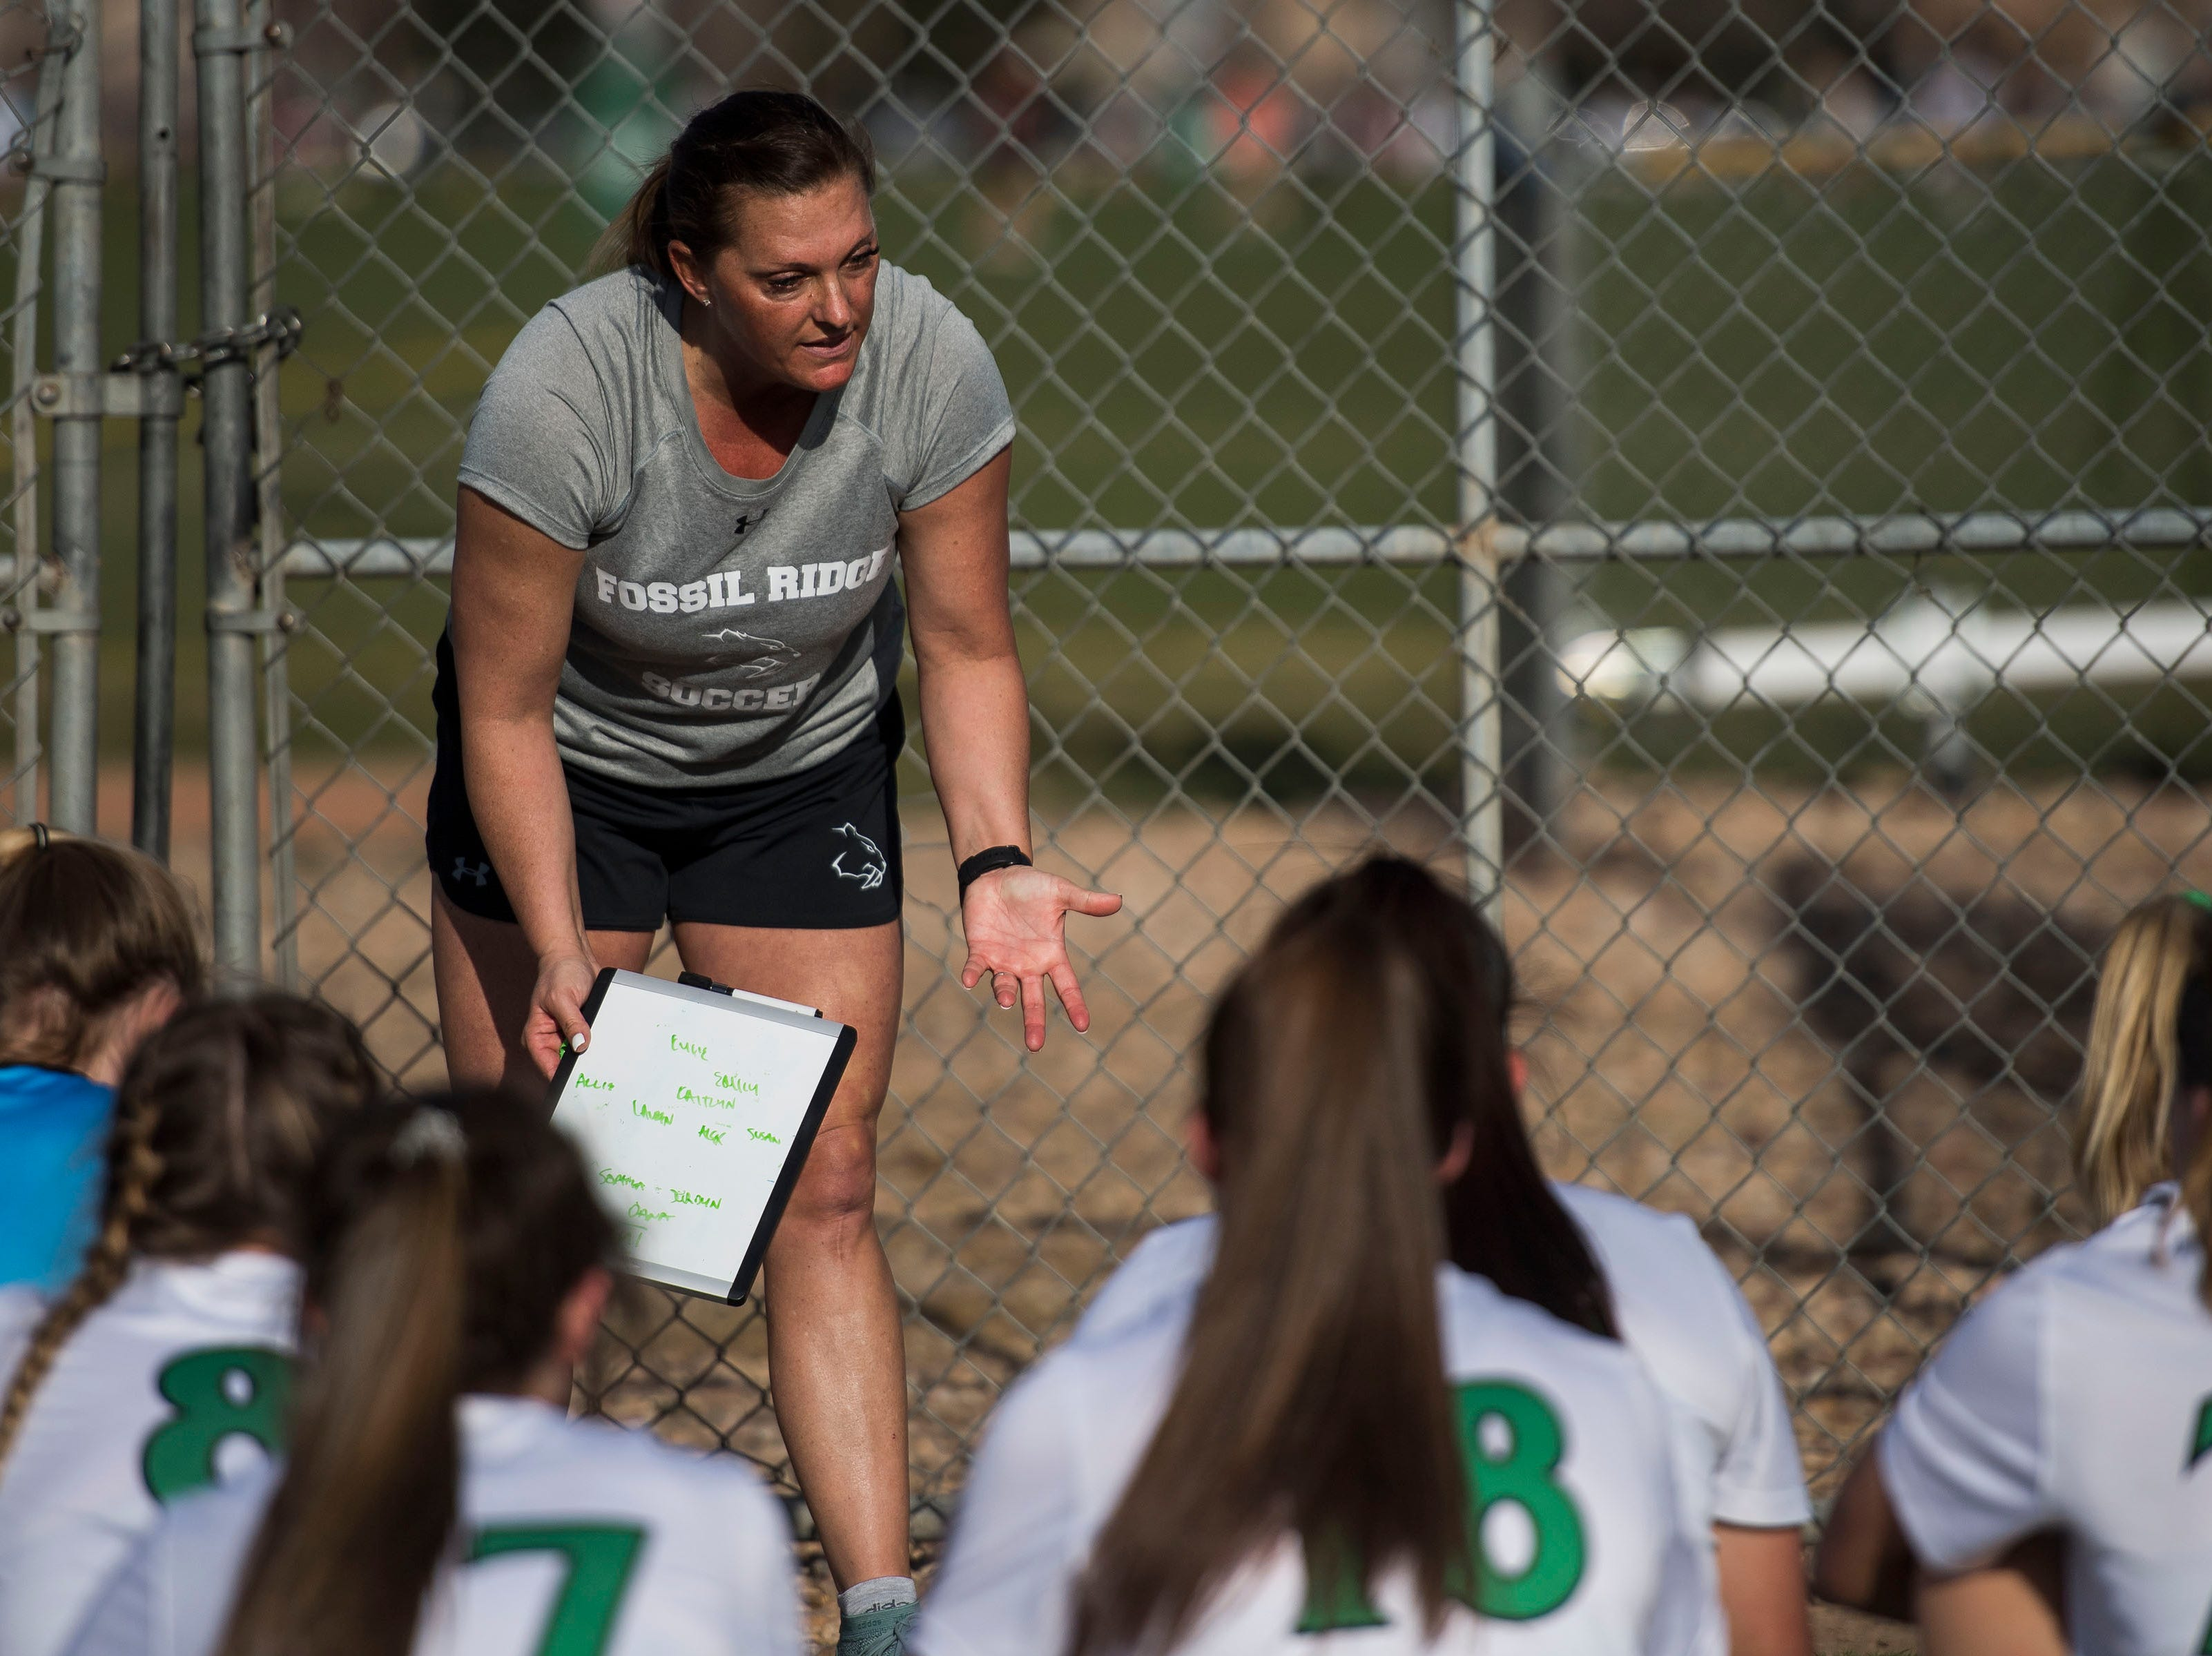 Fossil Ridge High School head coach Kim Whisenant talks with the team at halftime during a game against Rocky Mountain High School on Friday, April 4, 2019, at Colorado State University's soccer field in Fort Collins, Colo.